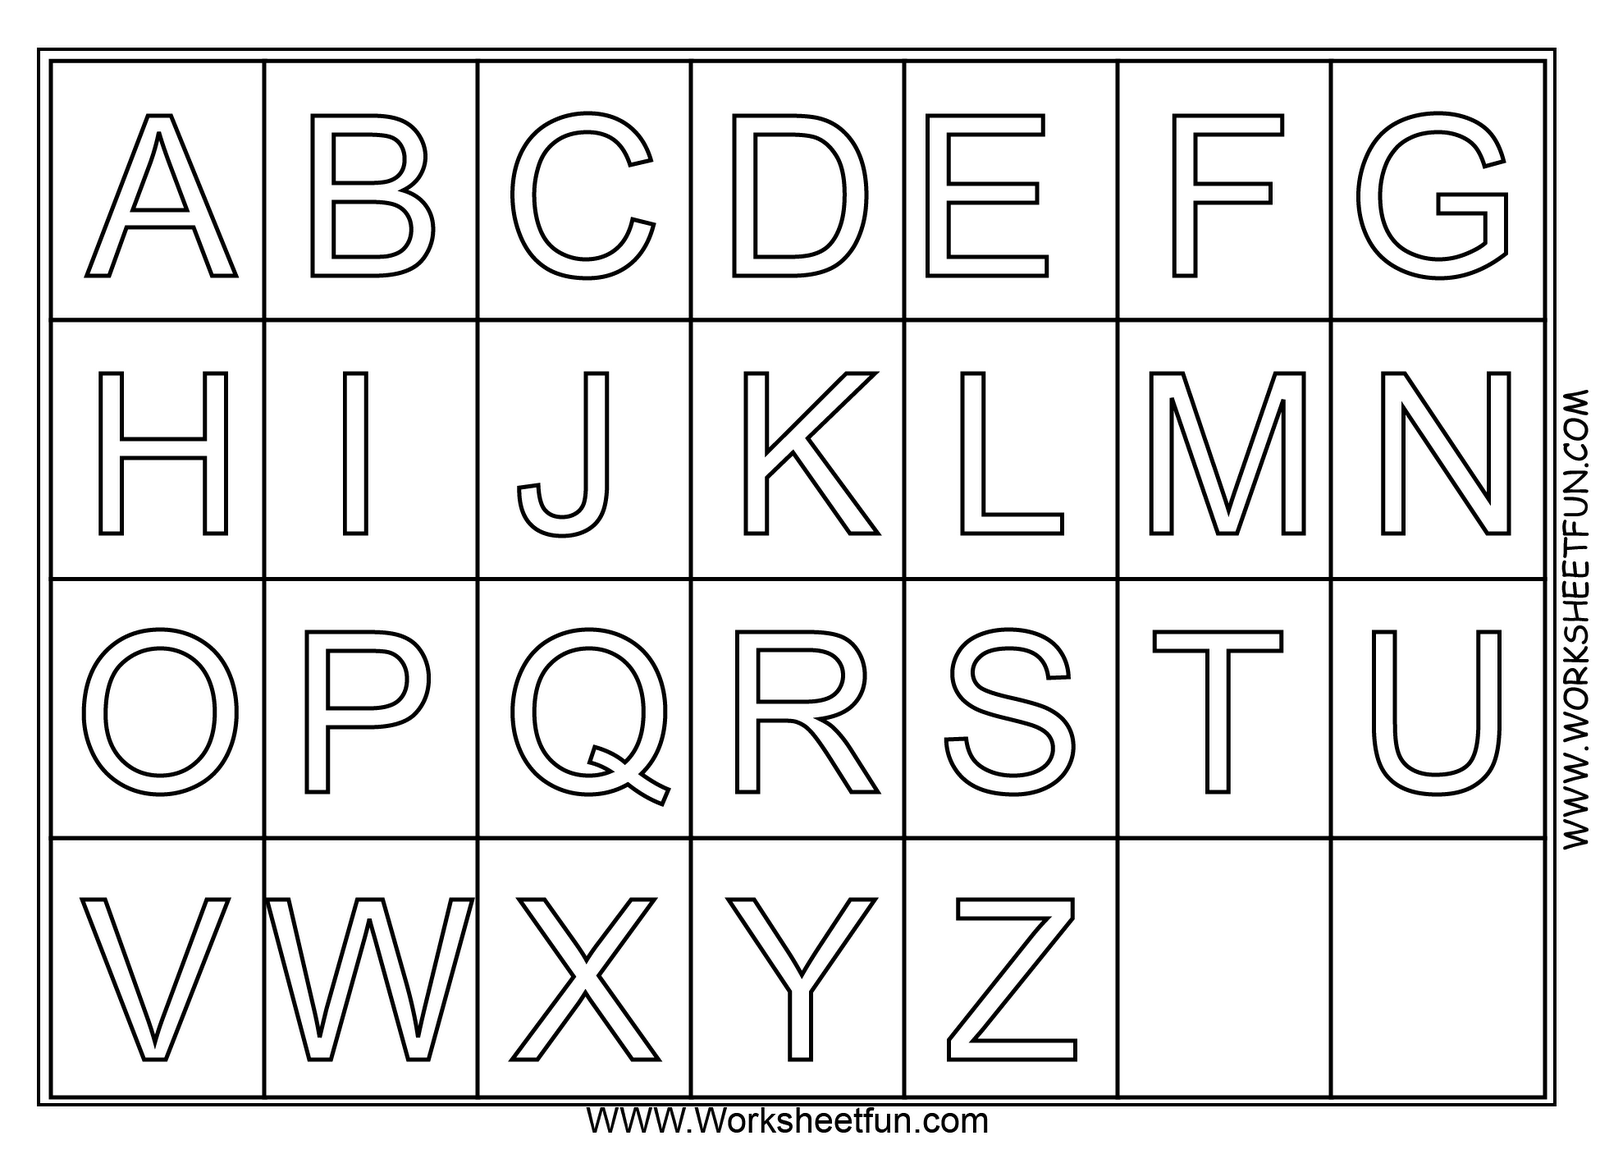 abc coloring book download free school book images download free clip art free clip download coloring abc book